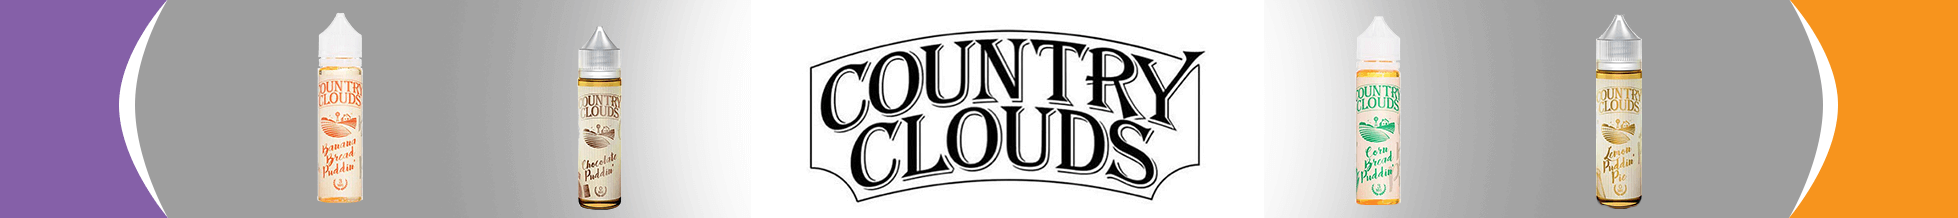 country-clouds.png